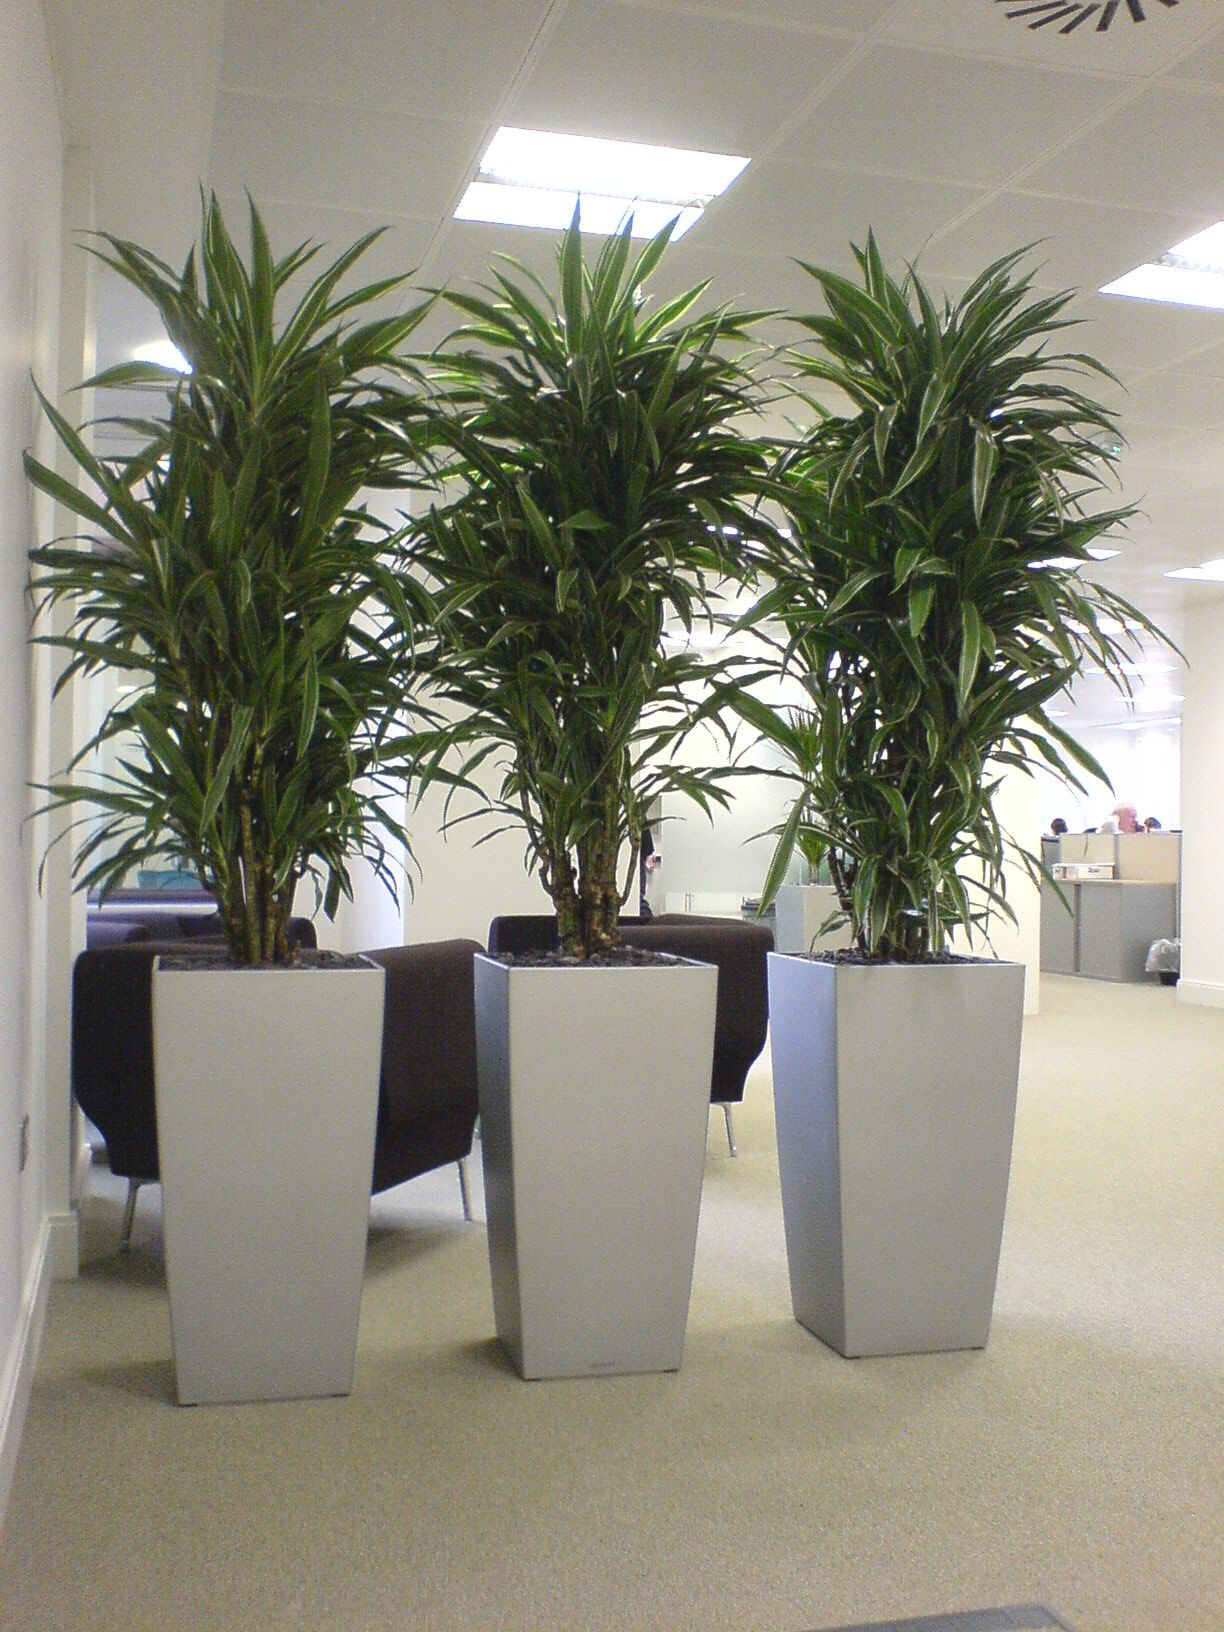 Indoor Small Plants Dracaena Warneckii Used As A Screen In Very Practical